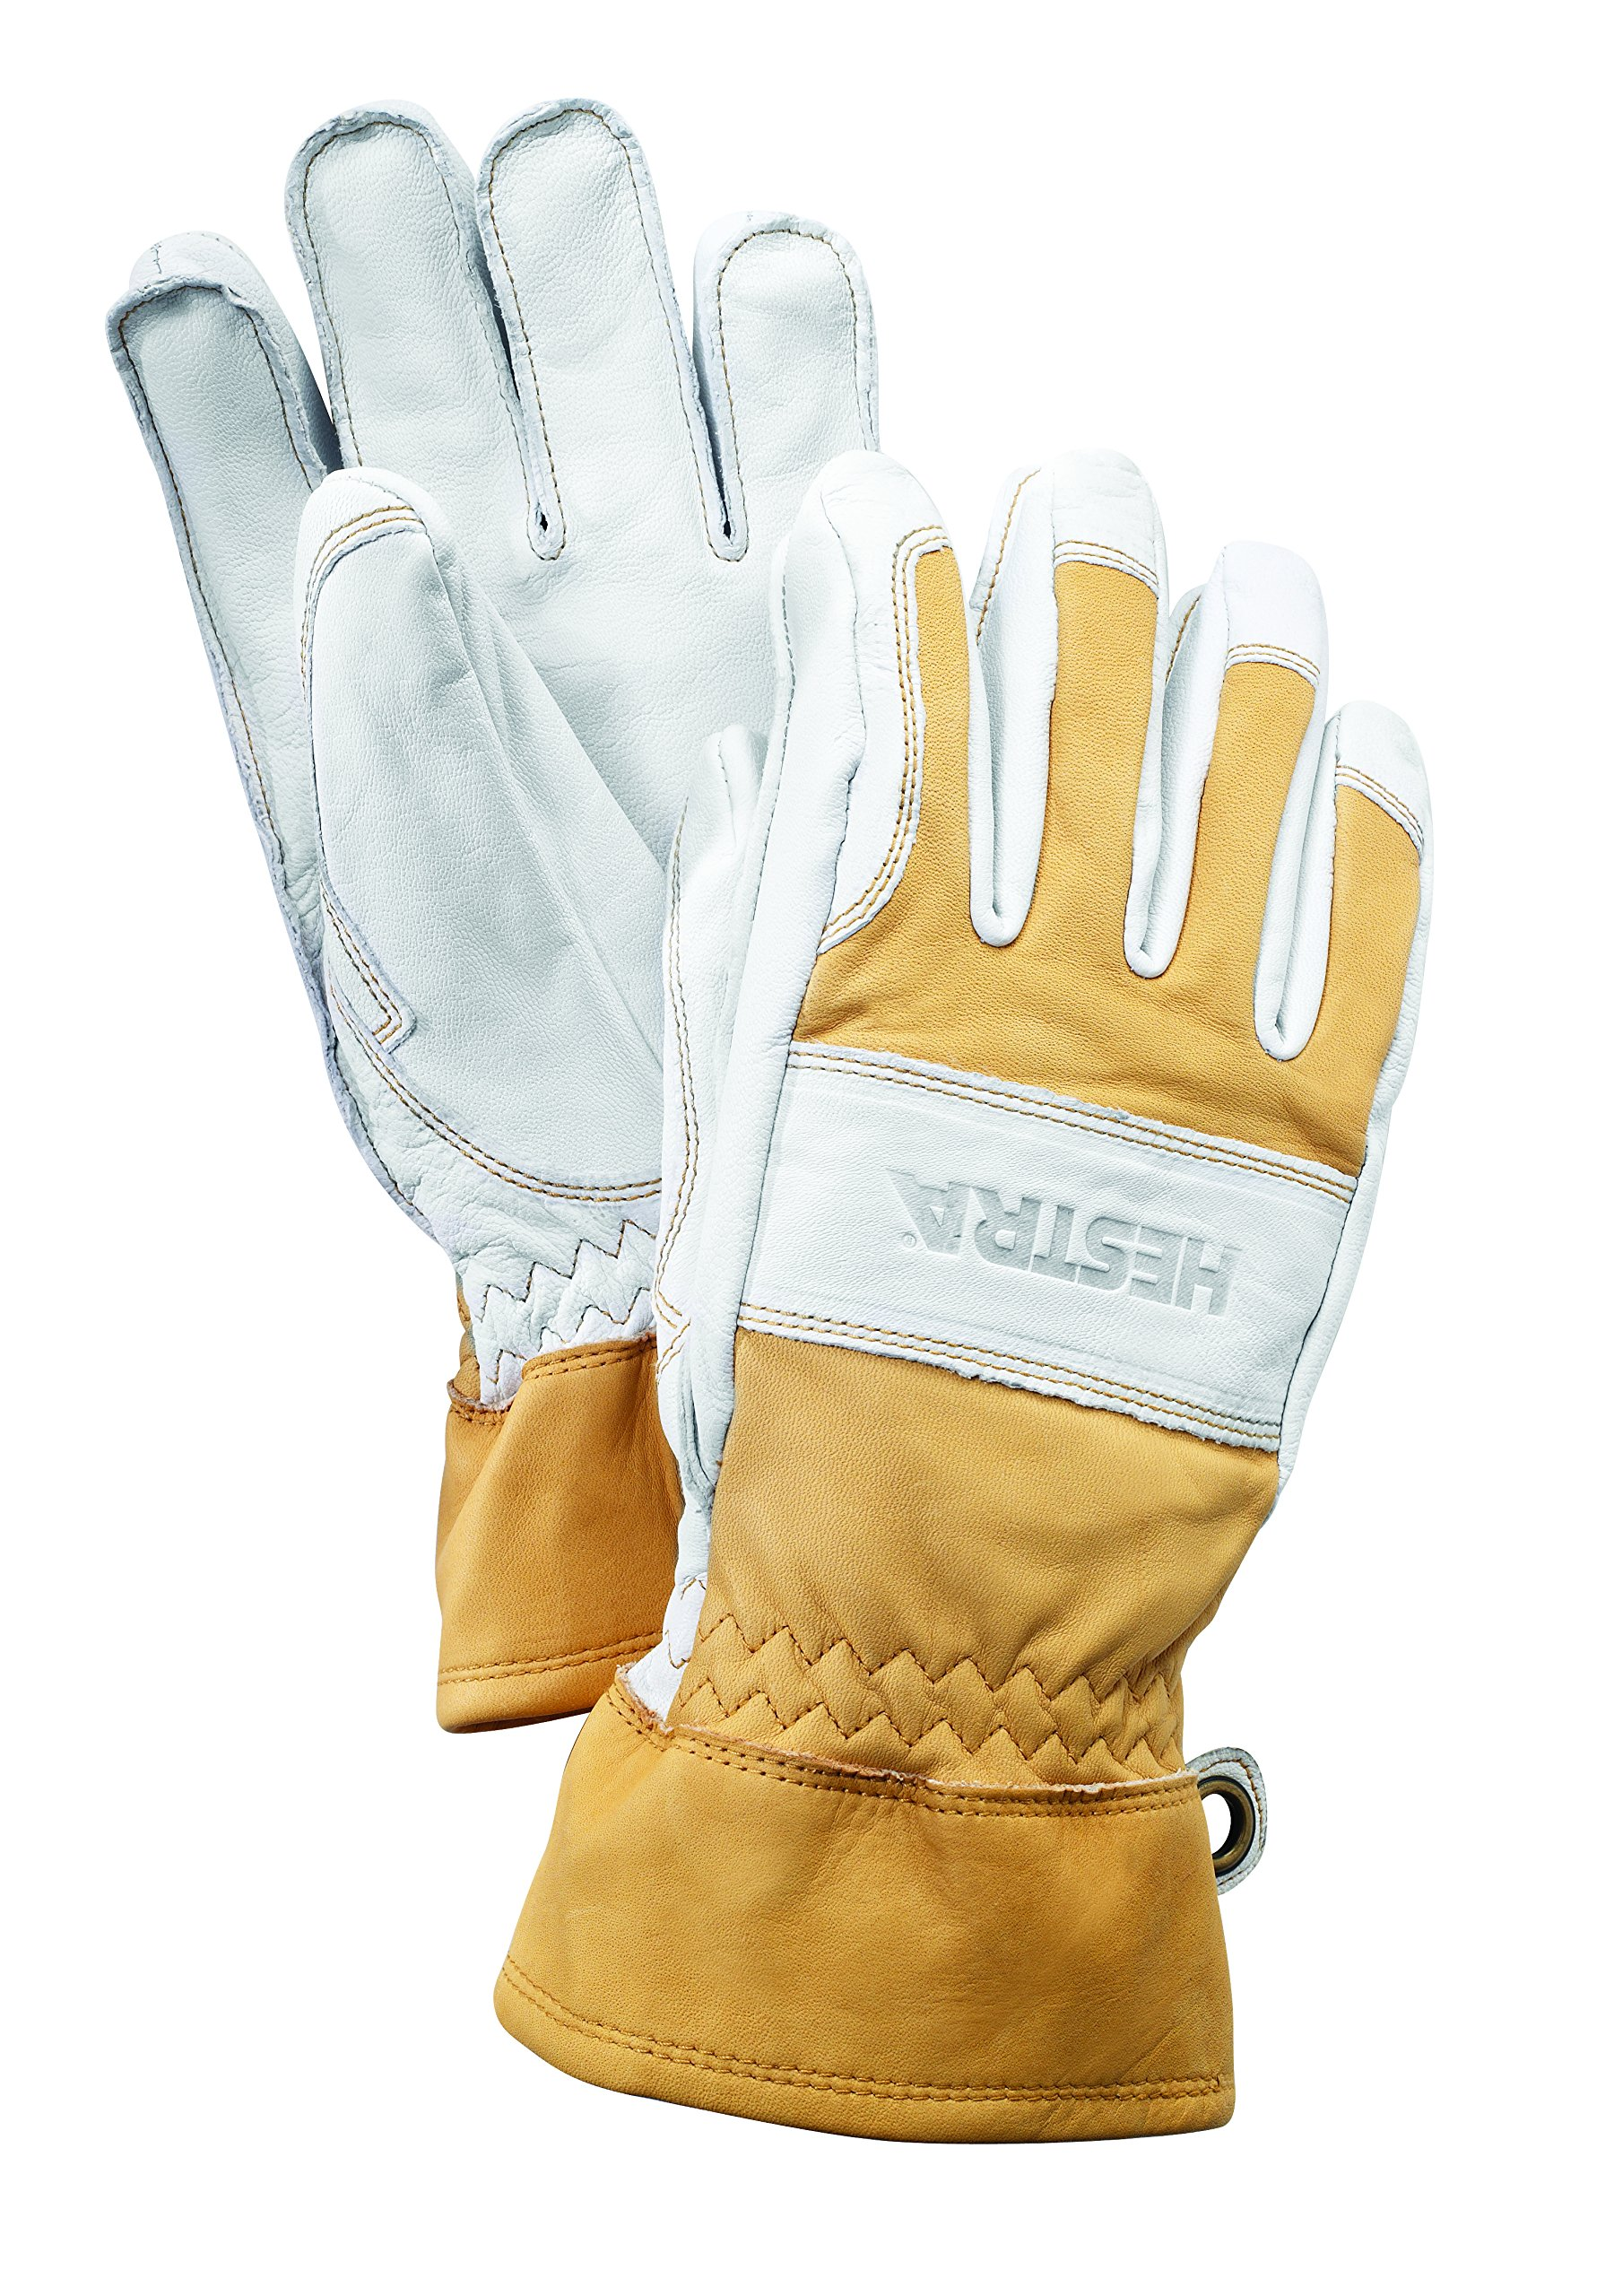 Hestra Guide Short Leather Glove with Wool Lining,Natural Brown/Off White,8